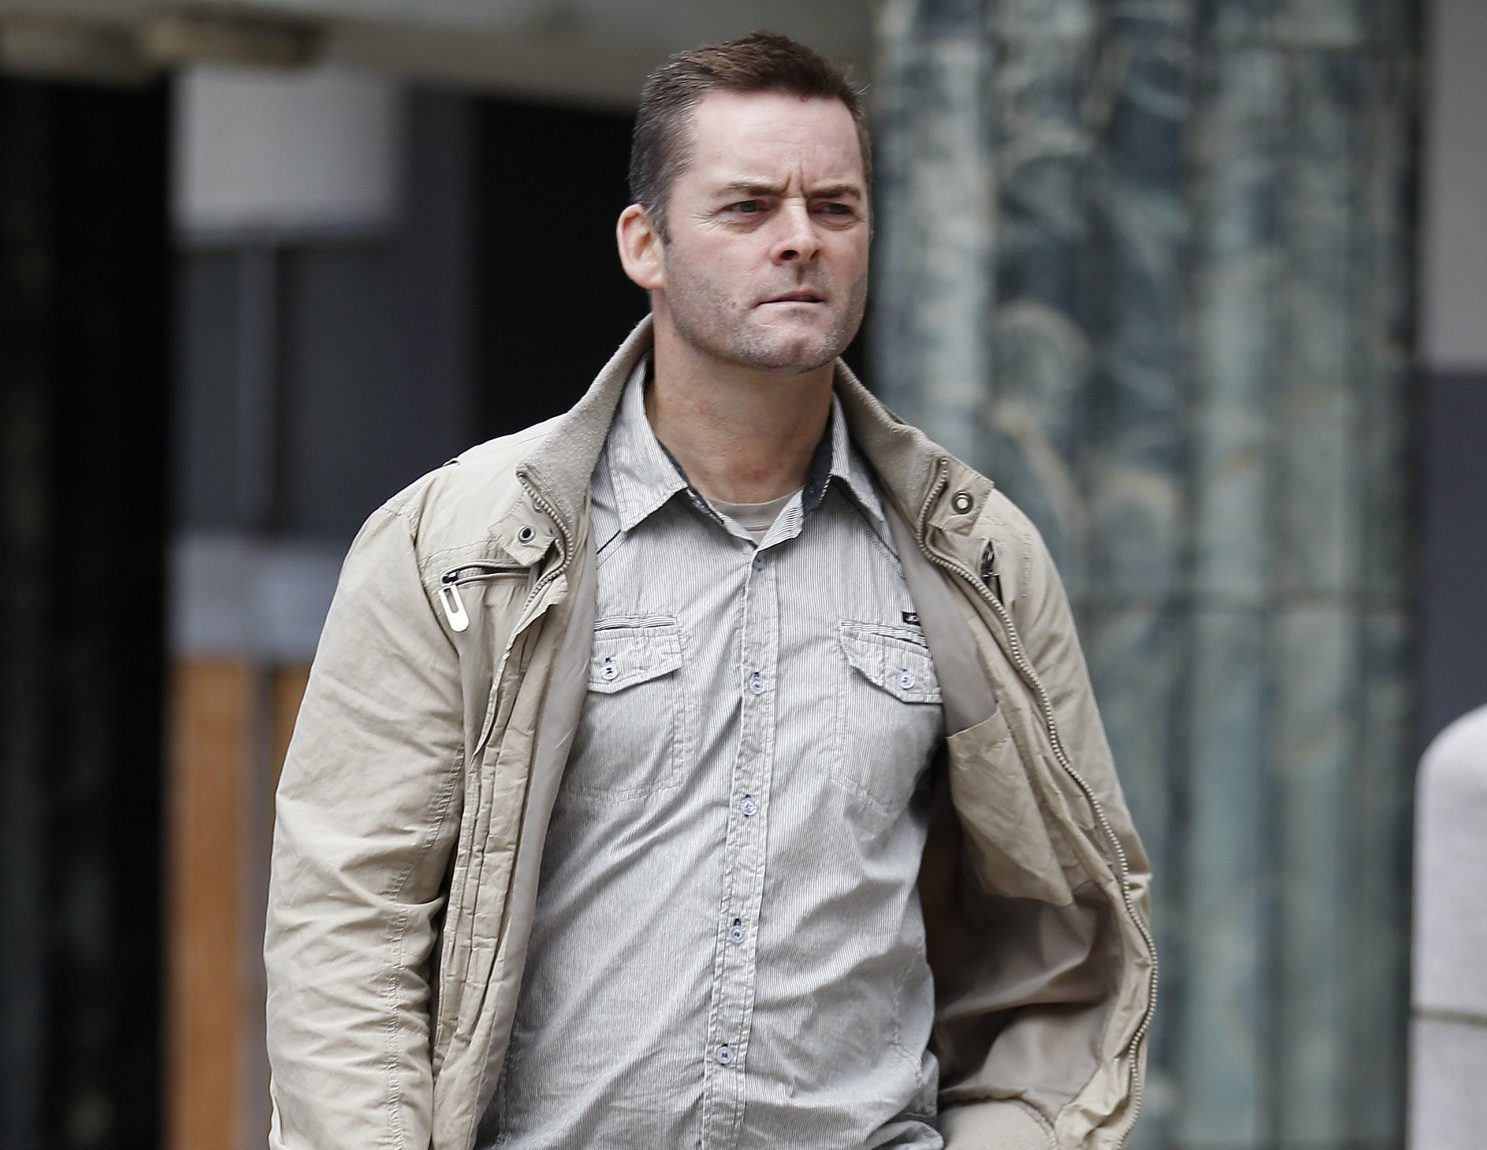 Ralph Bulger the father of James Bulger arrives at Liverpool Crown Court, Liverpool.